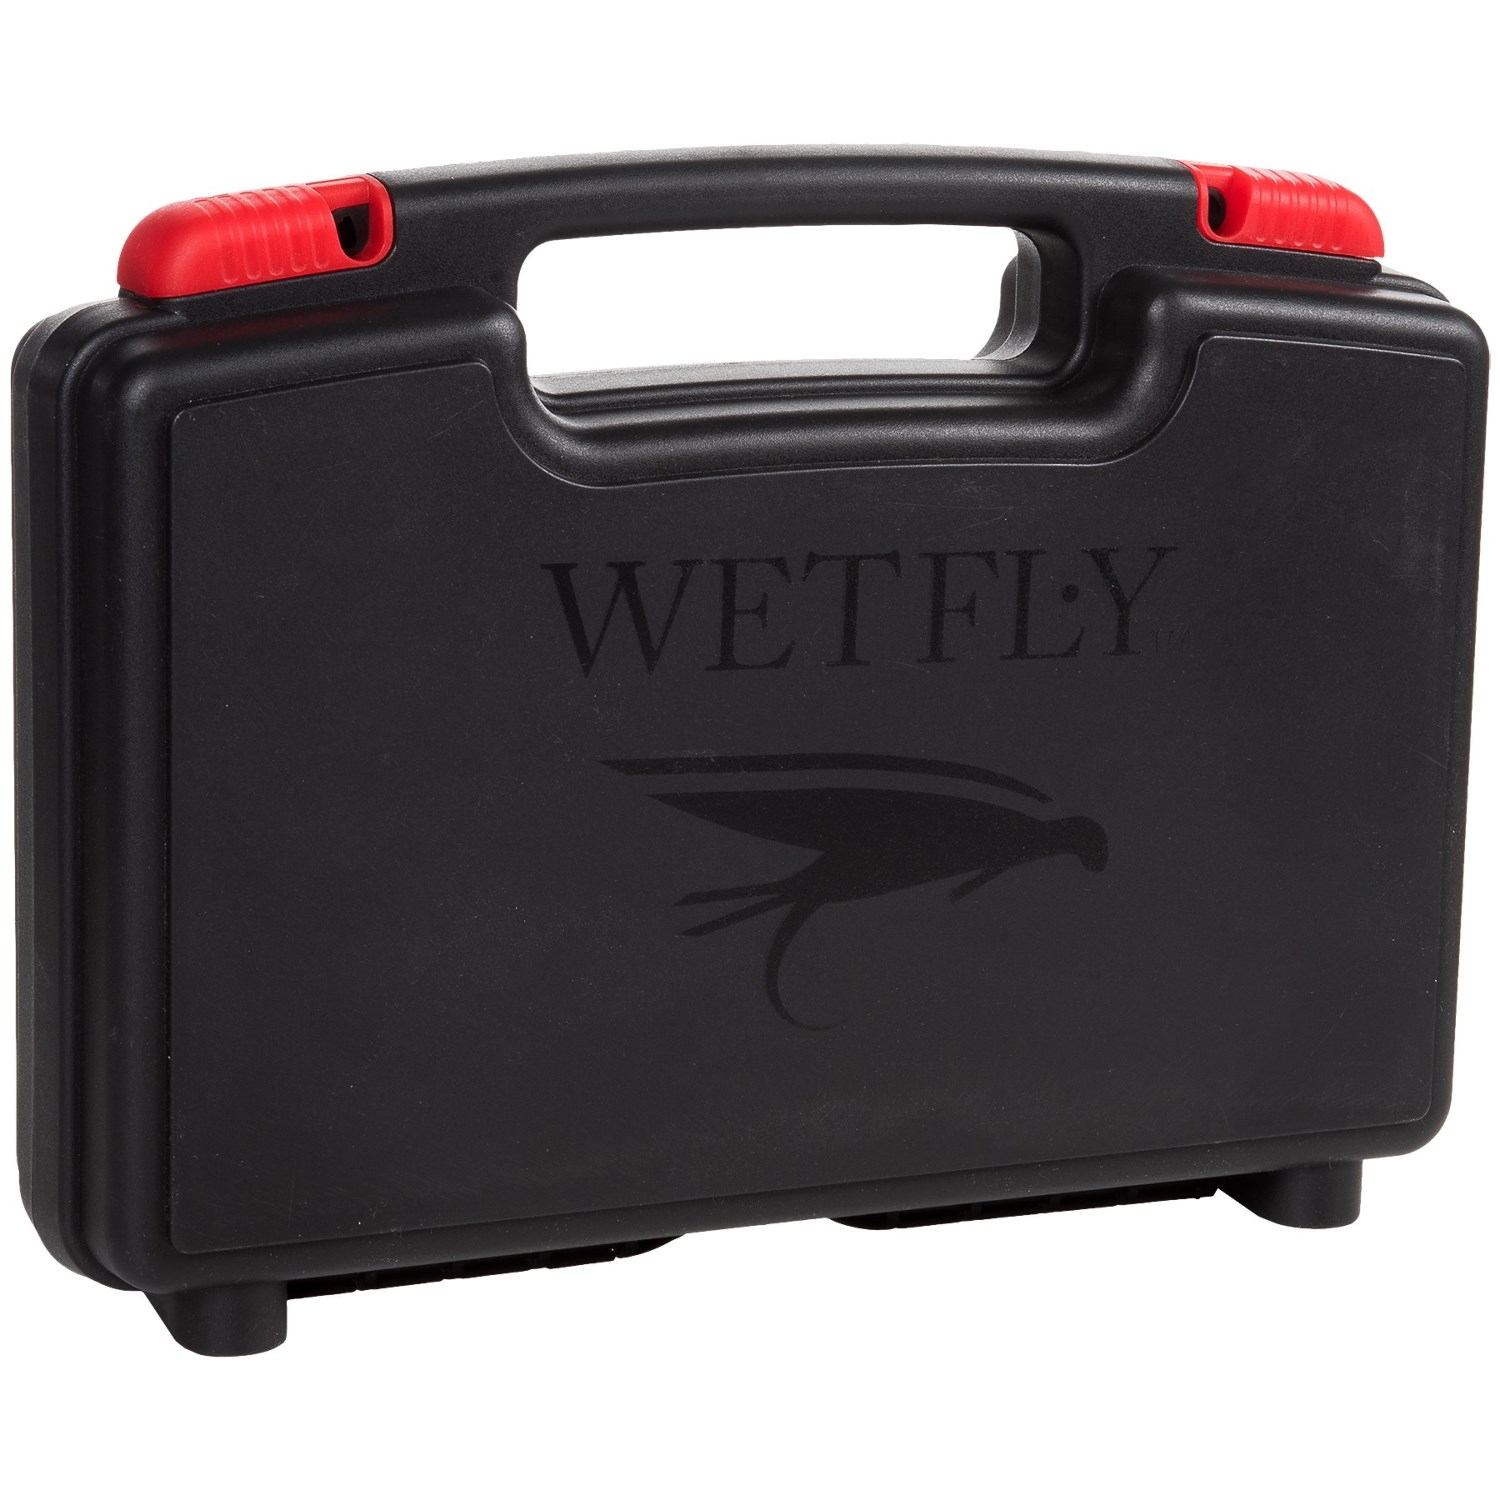 Wetfly boat box 306 fly box save 50 for Boat mailbox